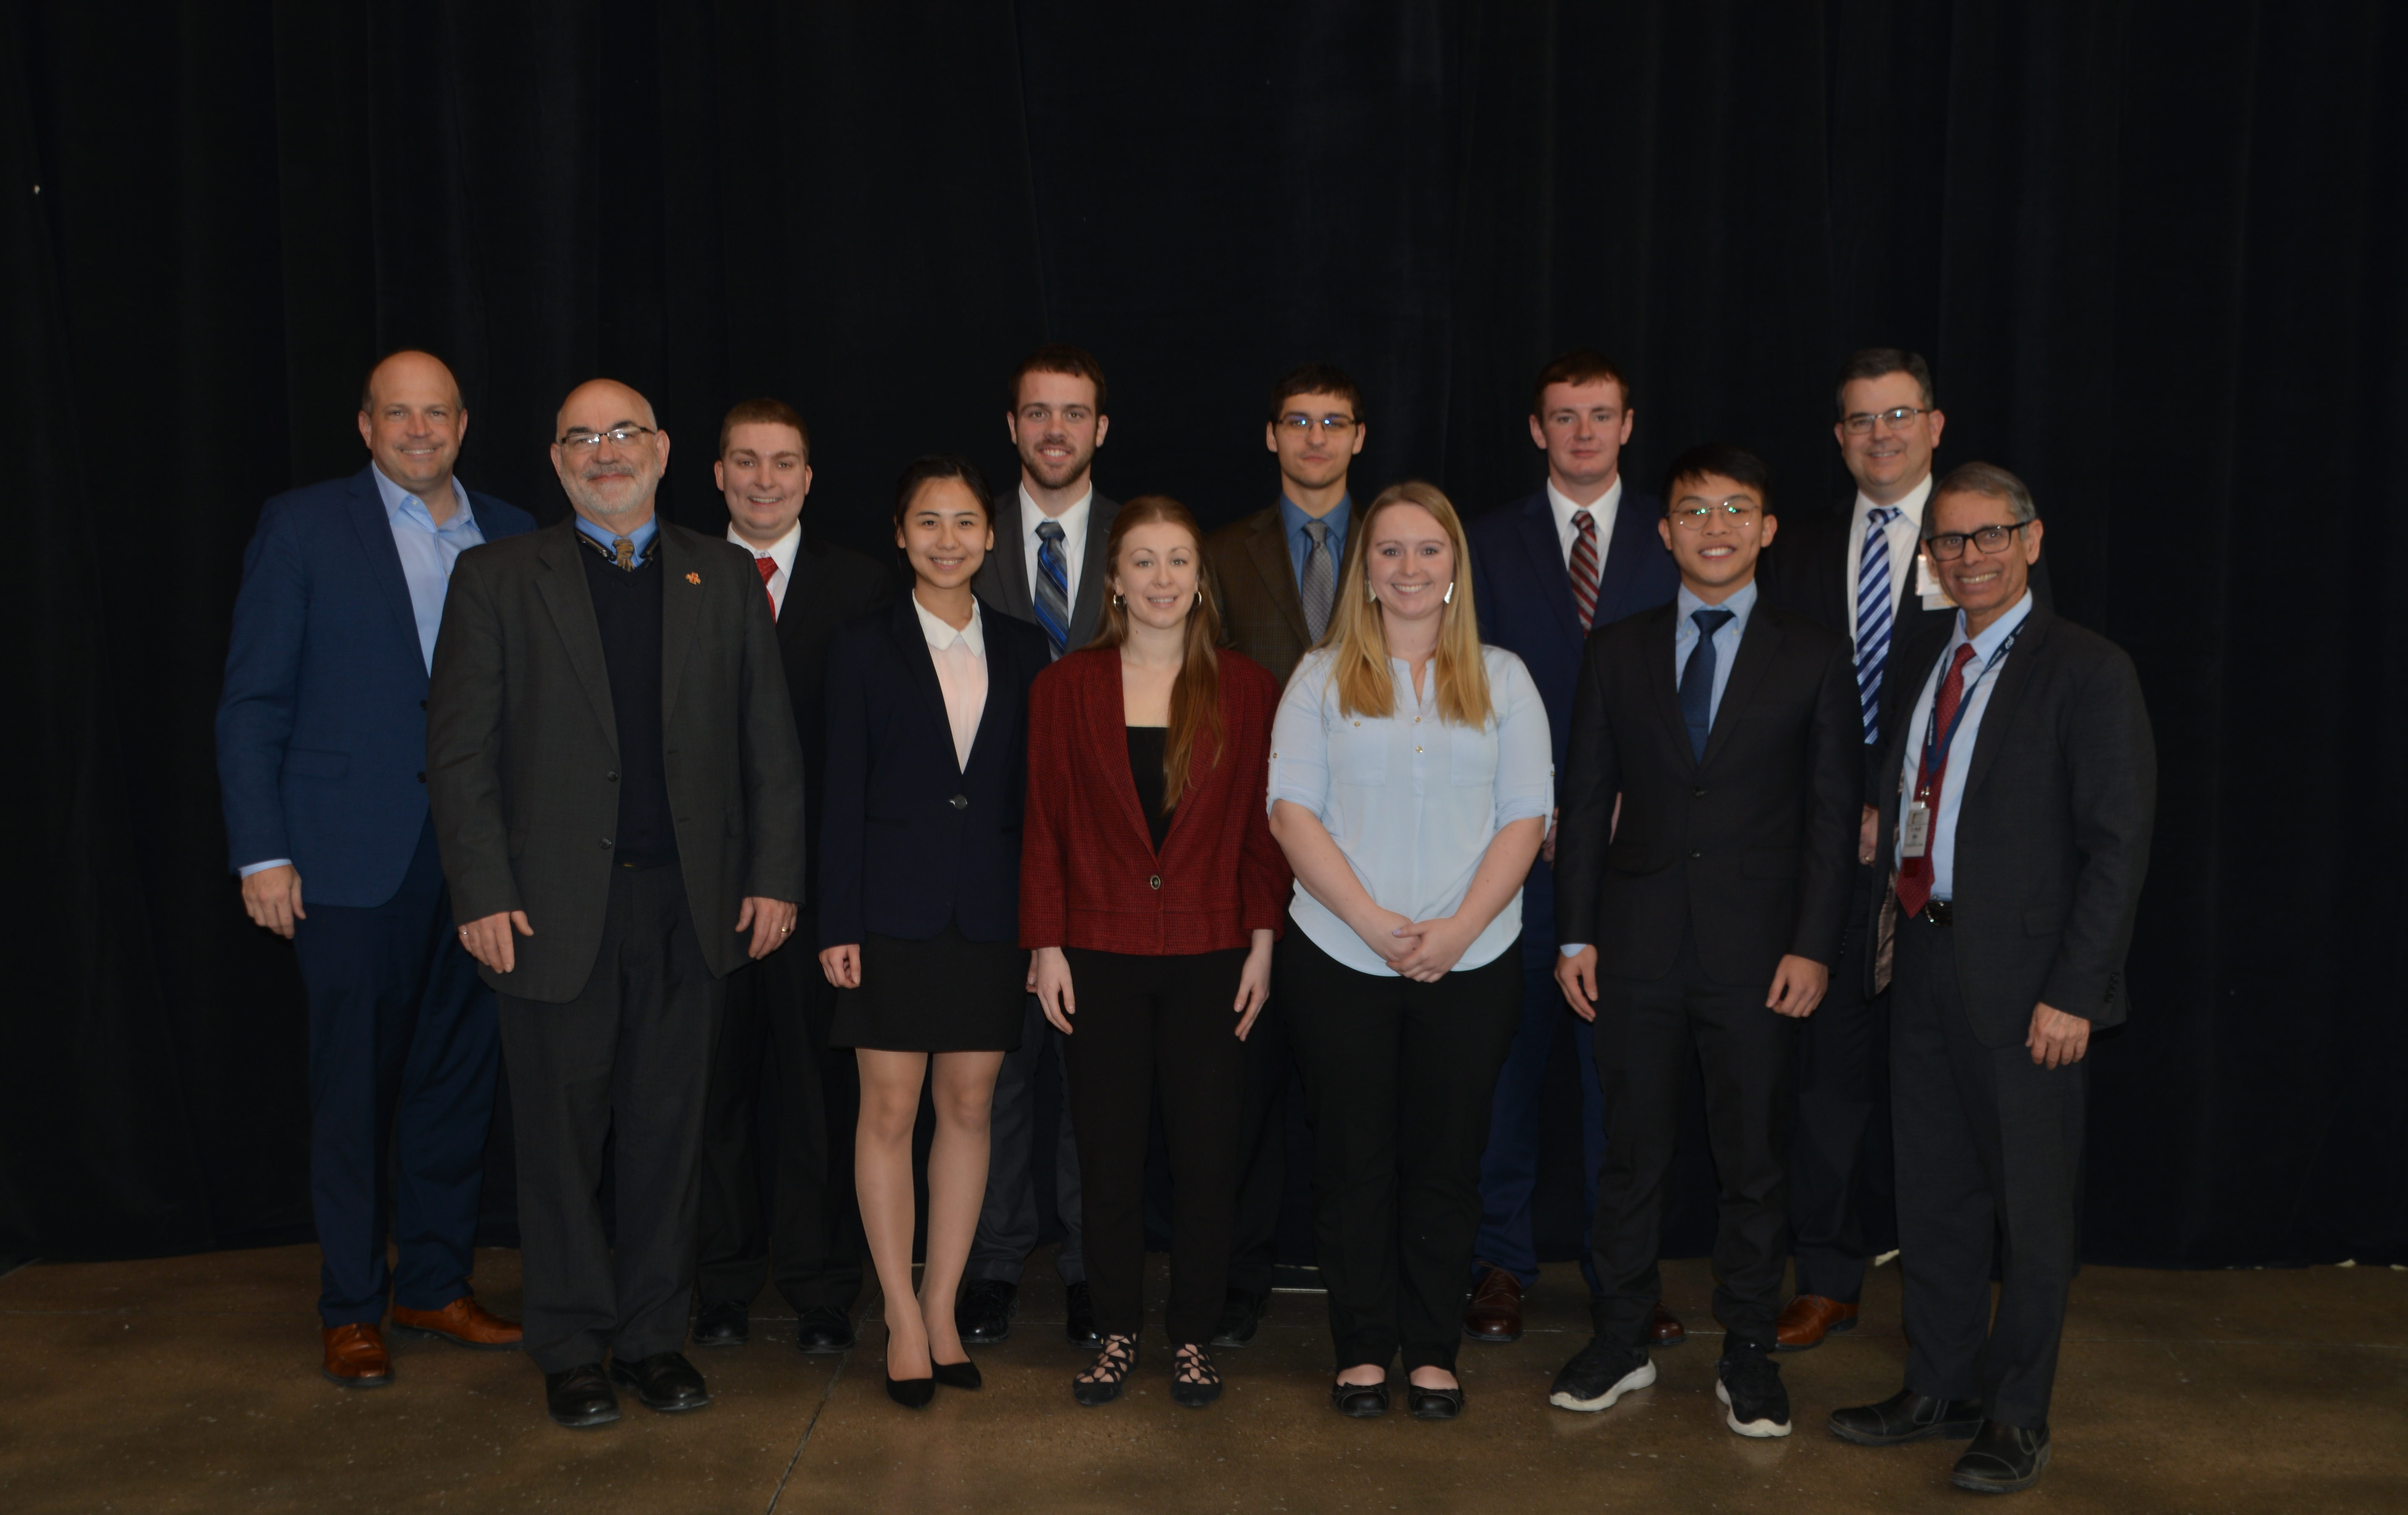 Scholarships and Recognitions Highlighted at Annual Meeting in Des Moines